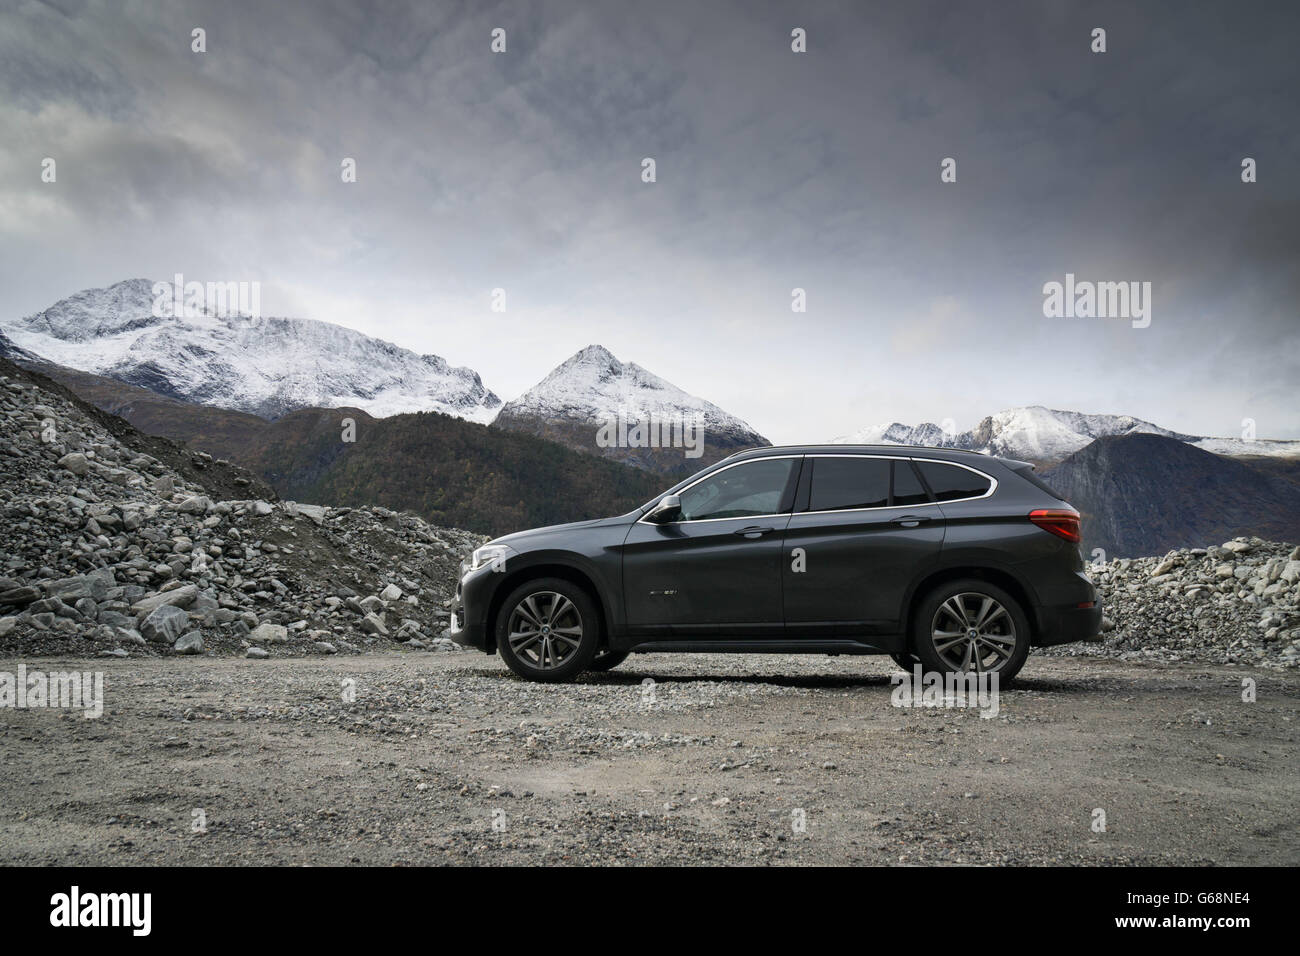 BMW in front of mountains - Stock Image